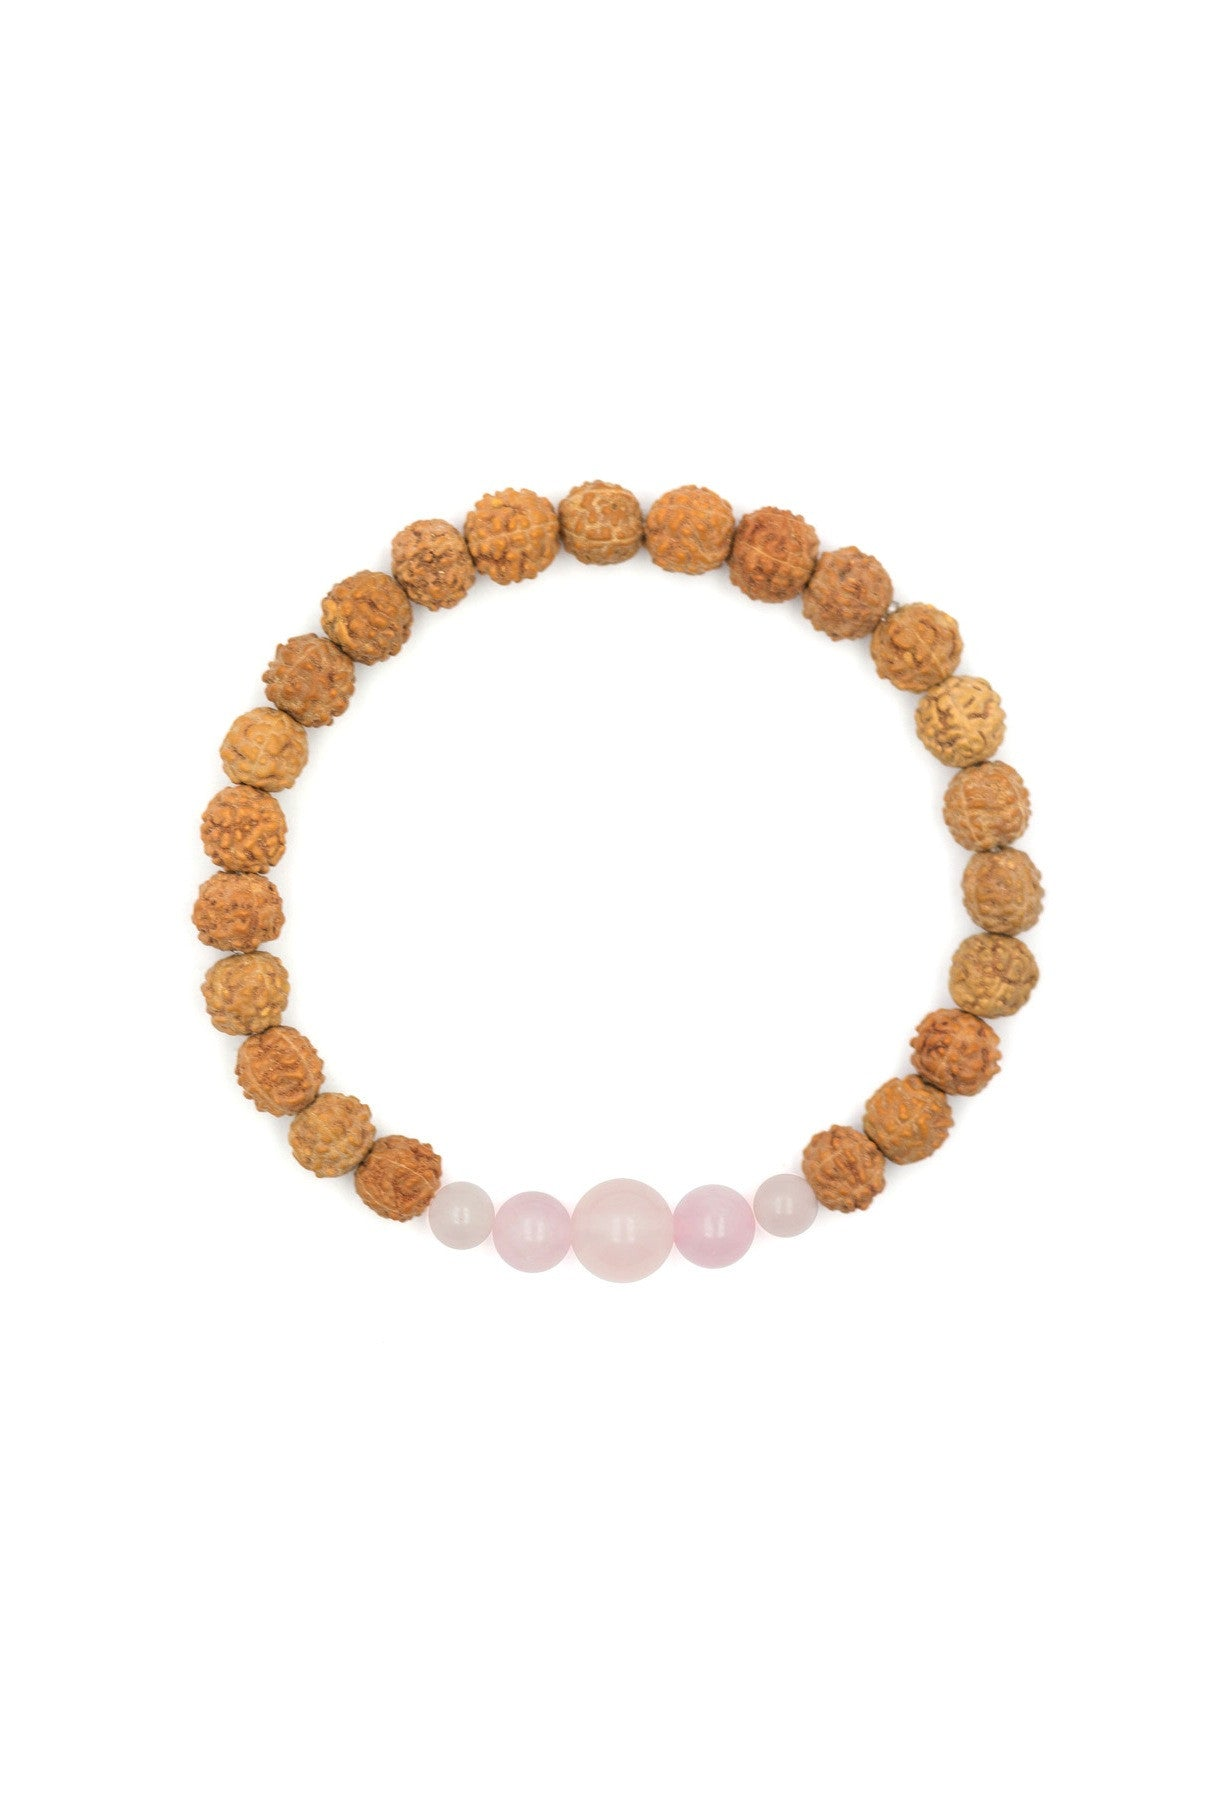 rose gemstones malas quartz mala bracelet friendly products bali